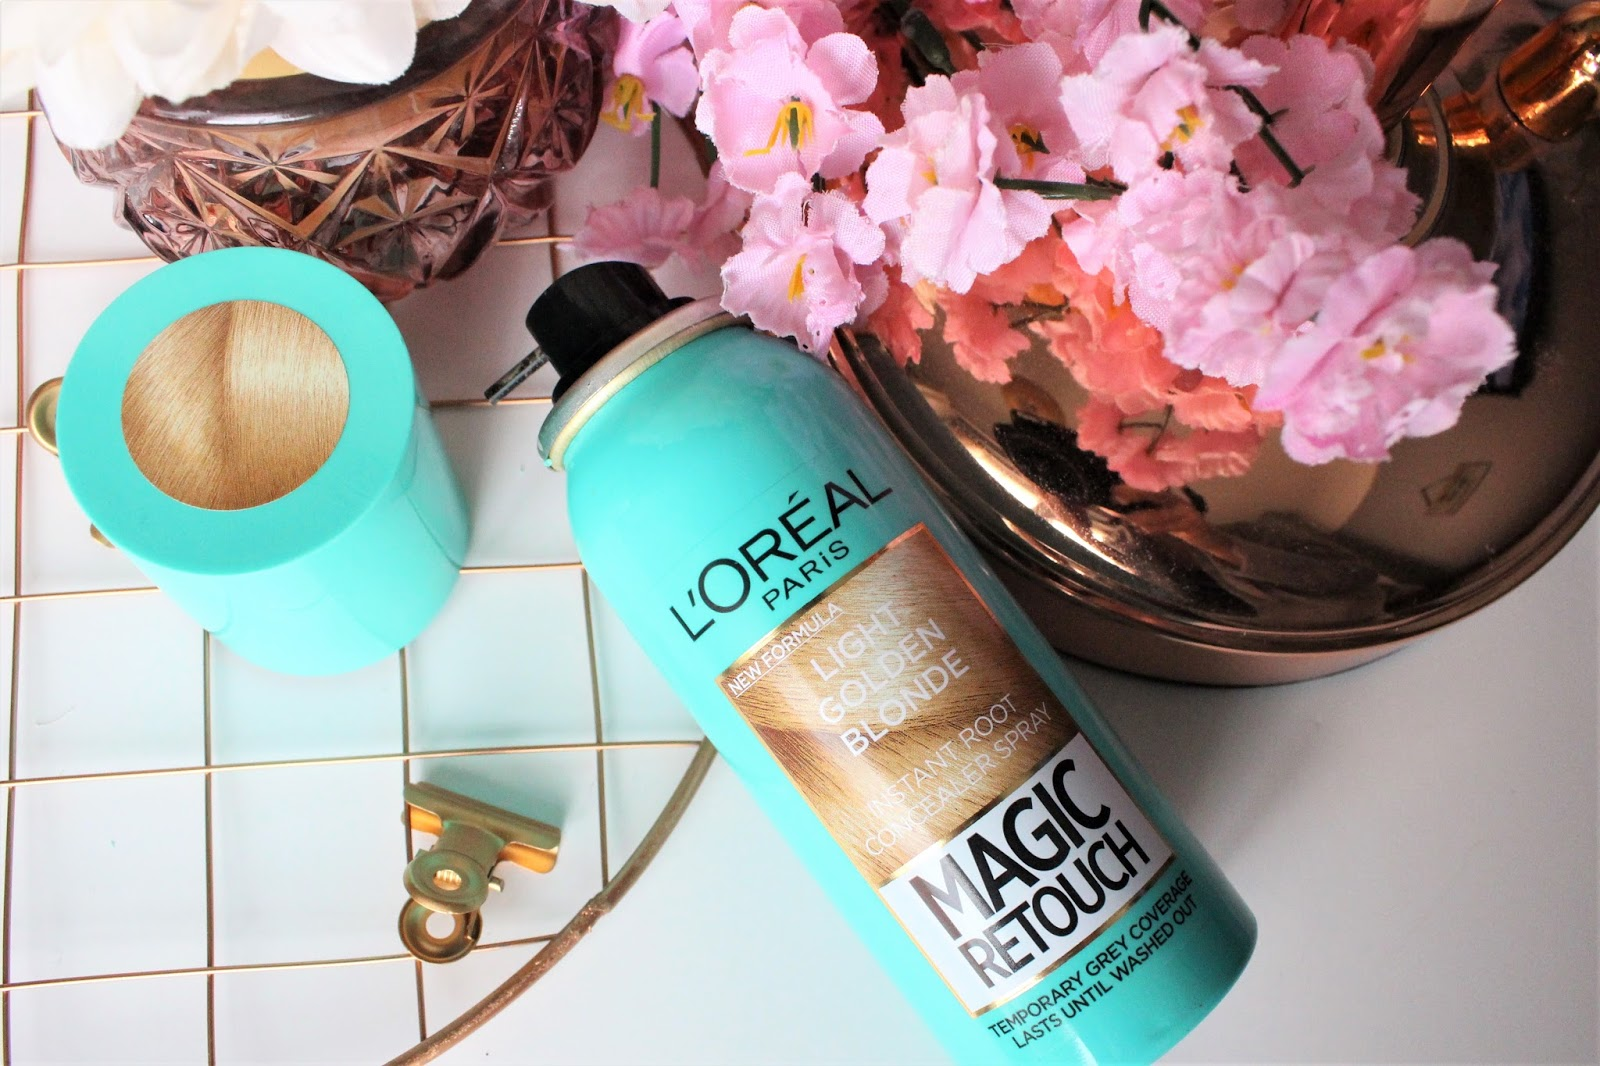 l'oreal magic retouch blog review